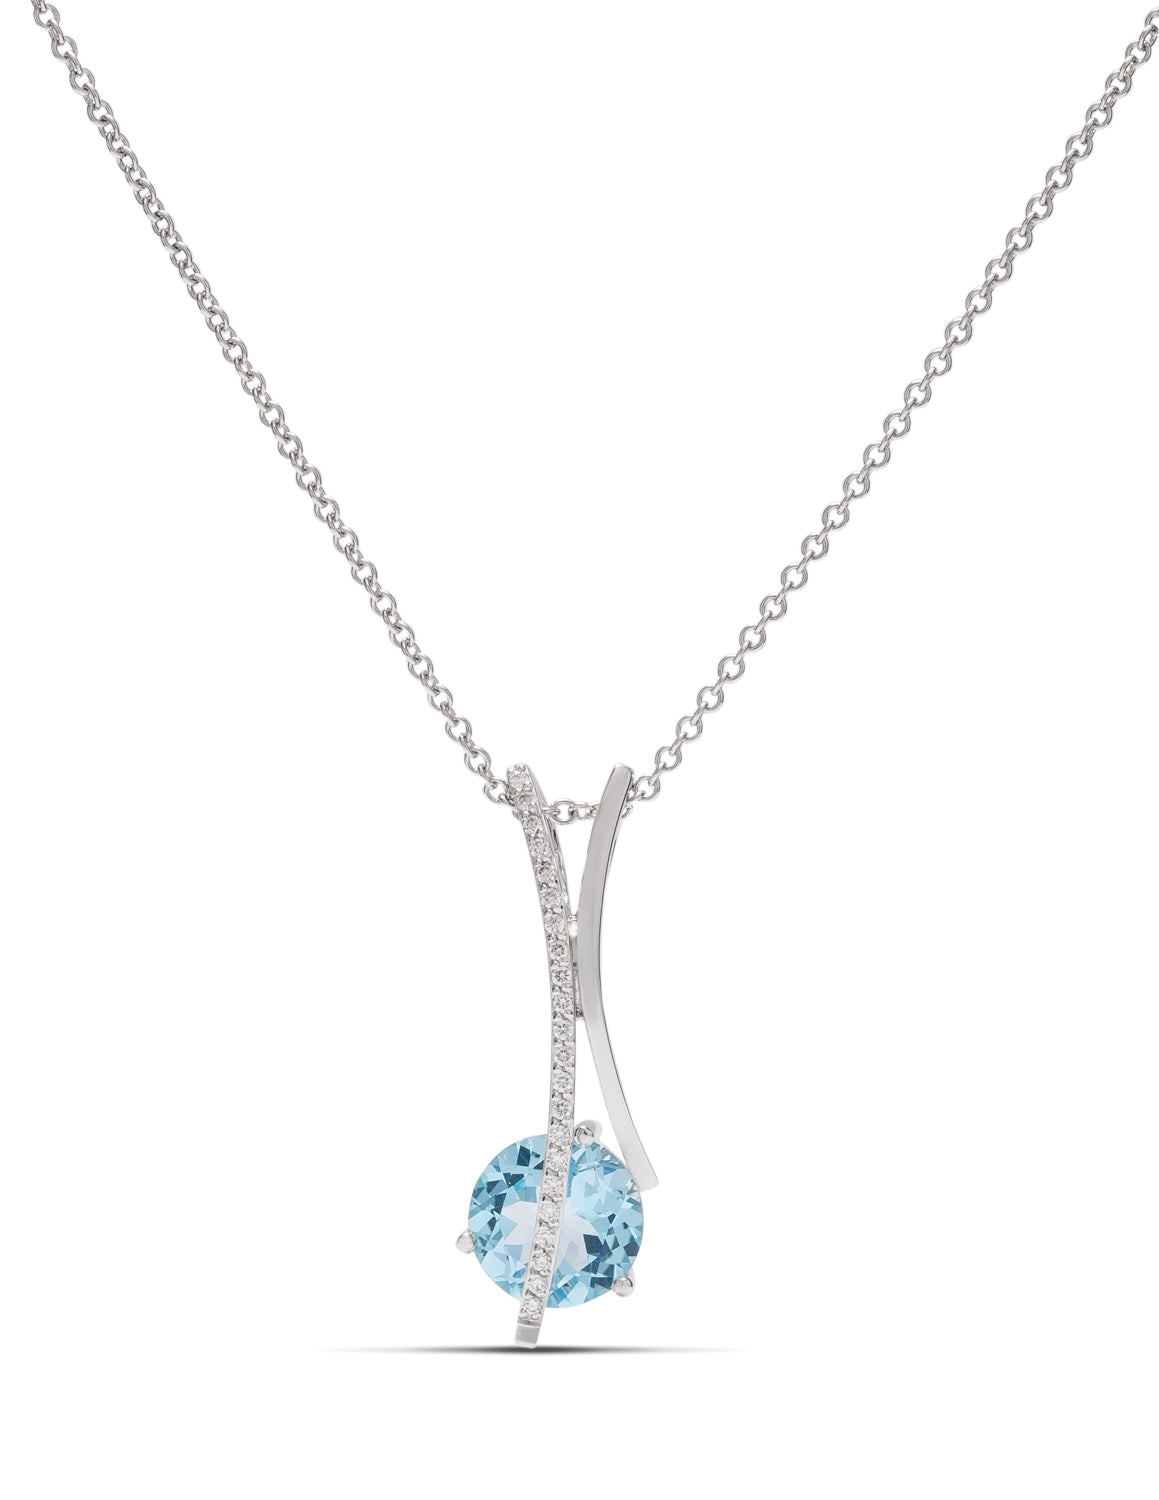 Blue Topaz and Diamond Pendant - Charles Koll Jewellers